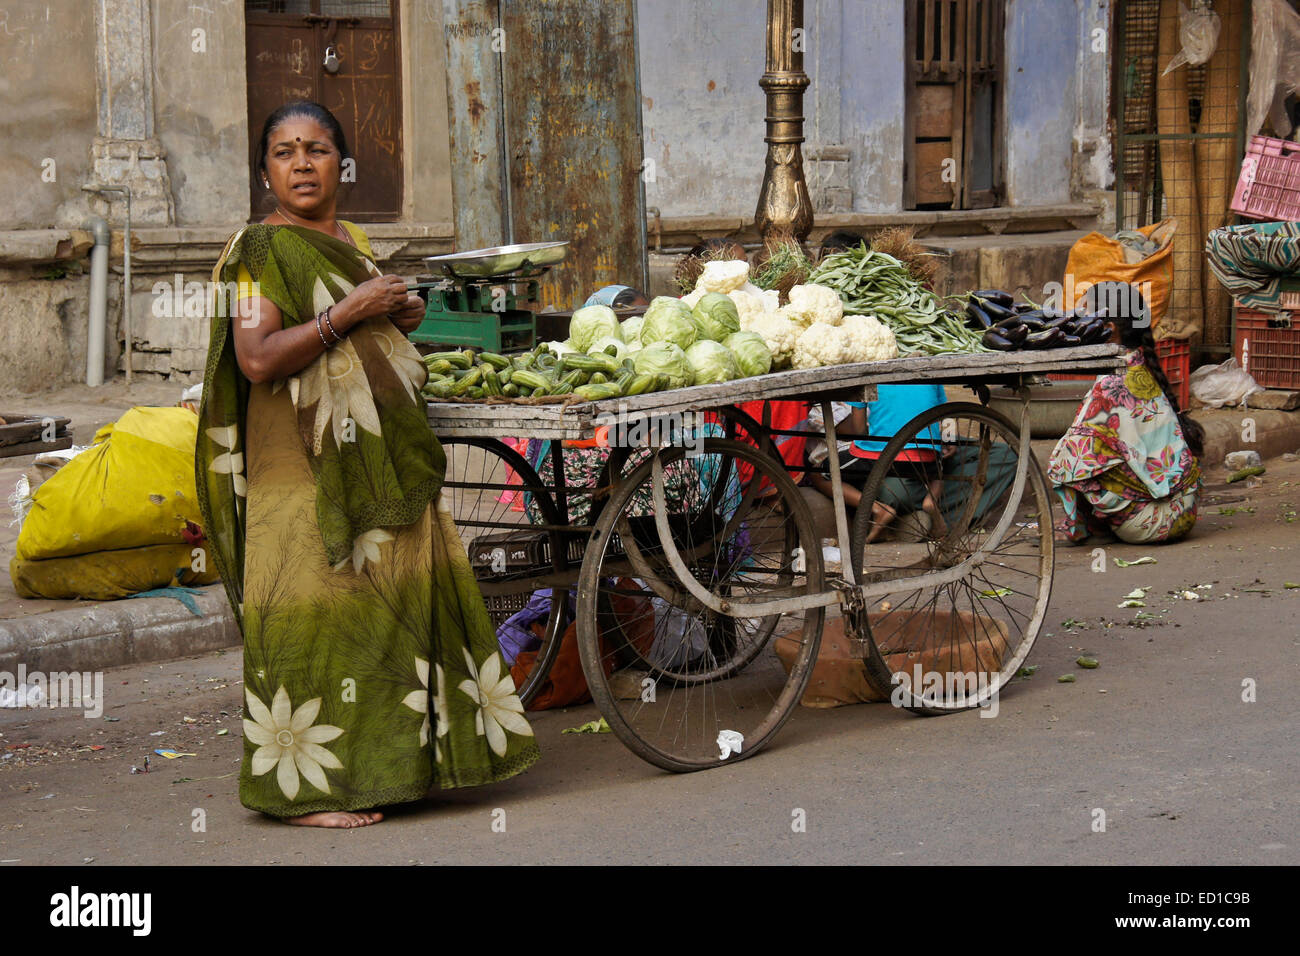 Woman selling produce on street in Old Ahmedabad, Gujarat, India - Stock Image